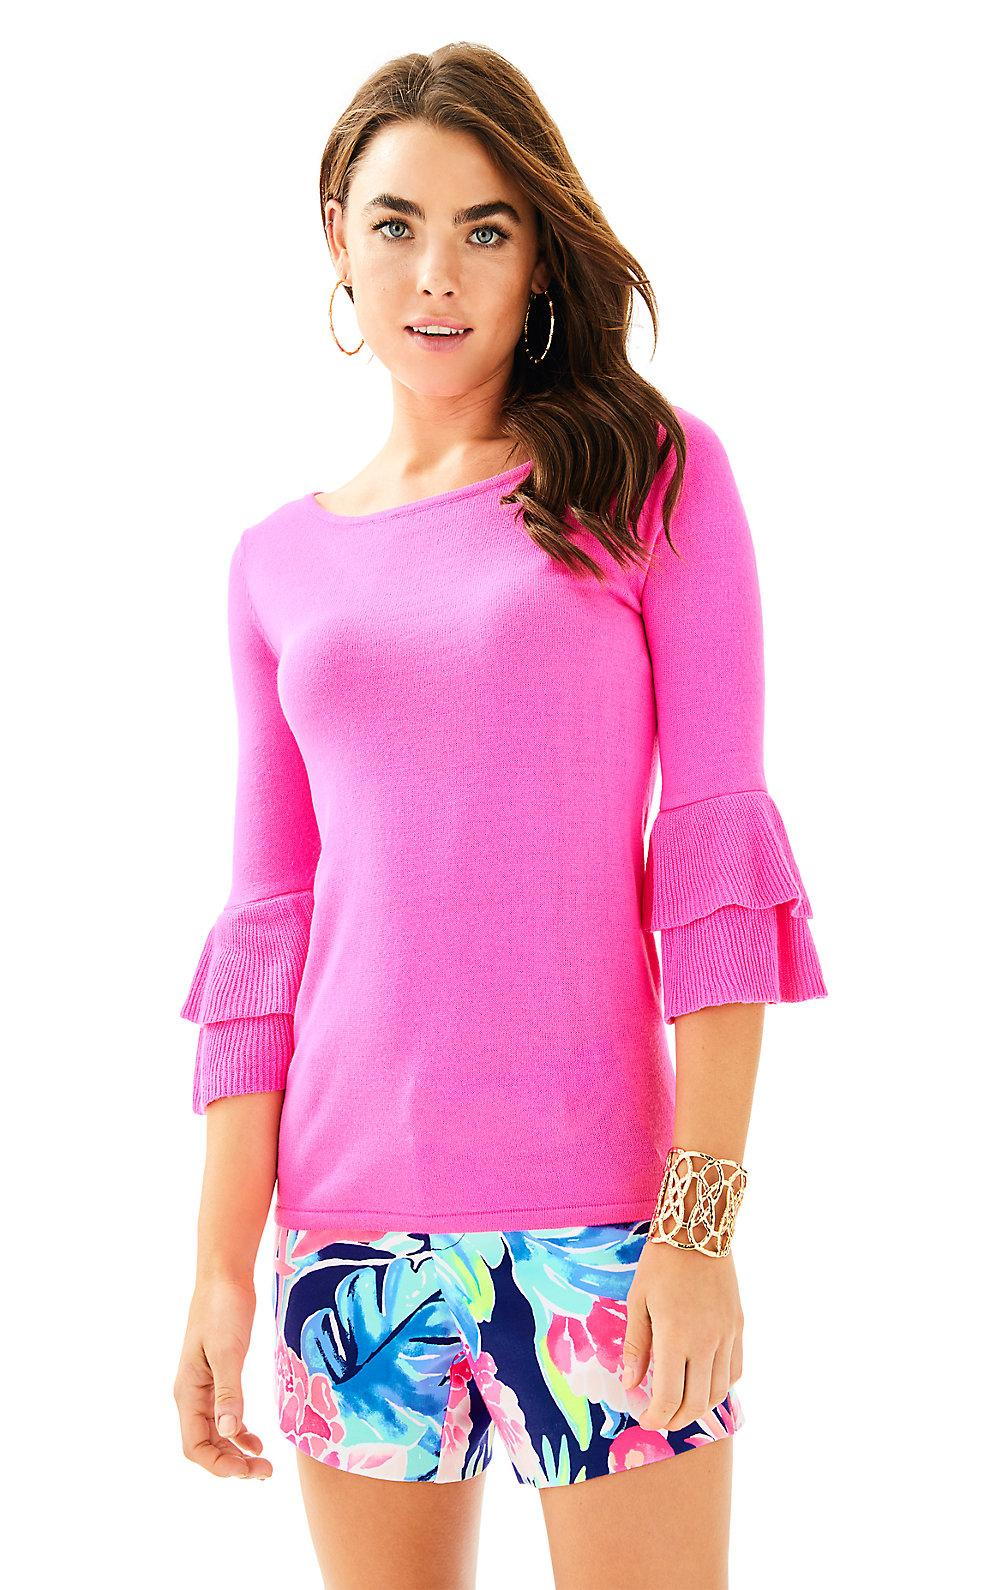 Lilly Pulitzer Clare Sweater In Raz Berry